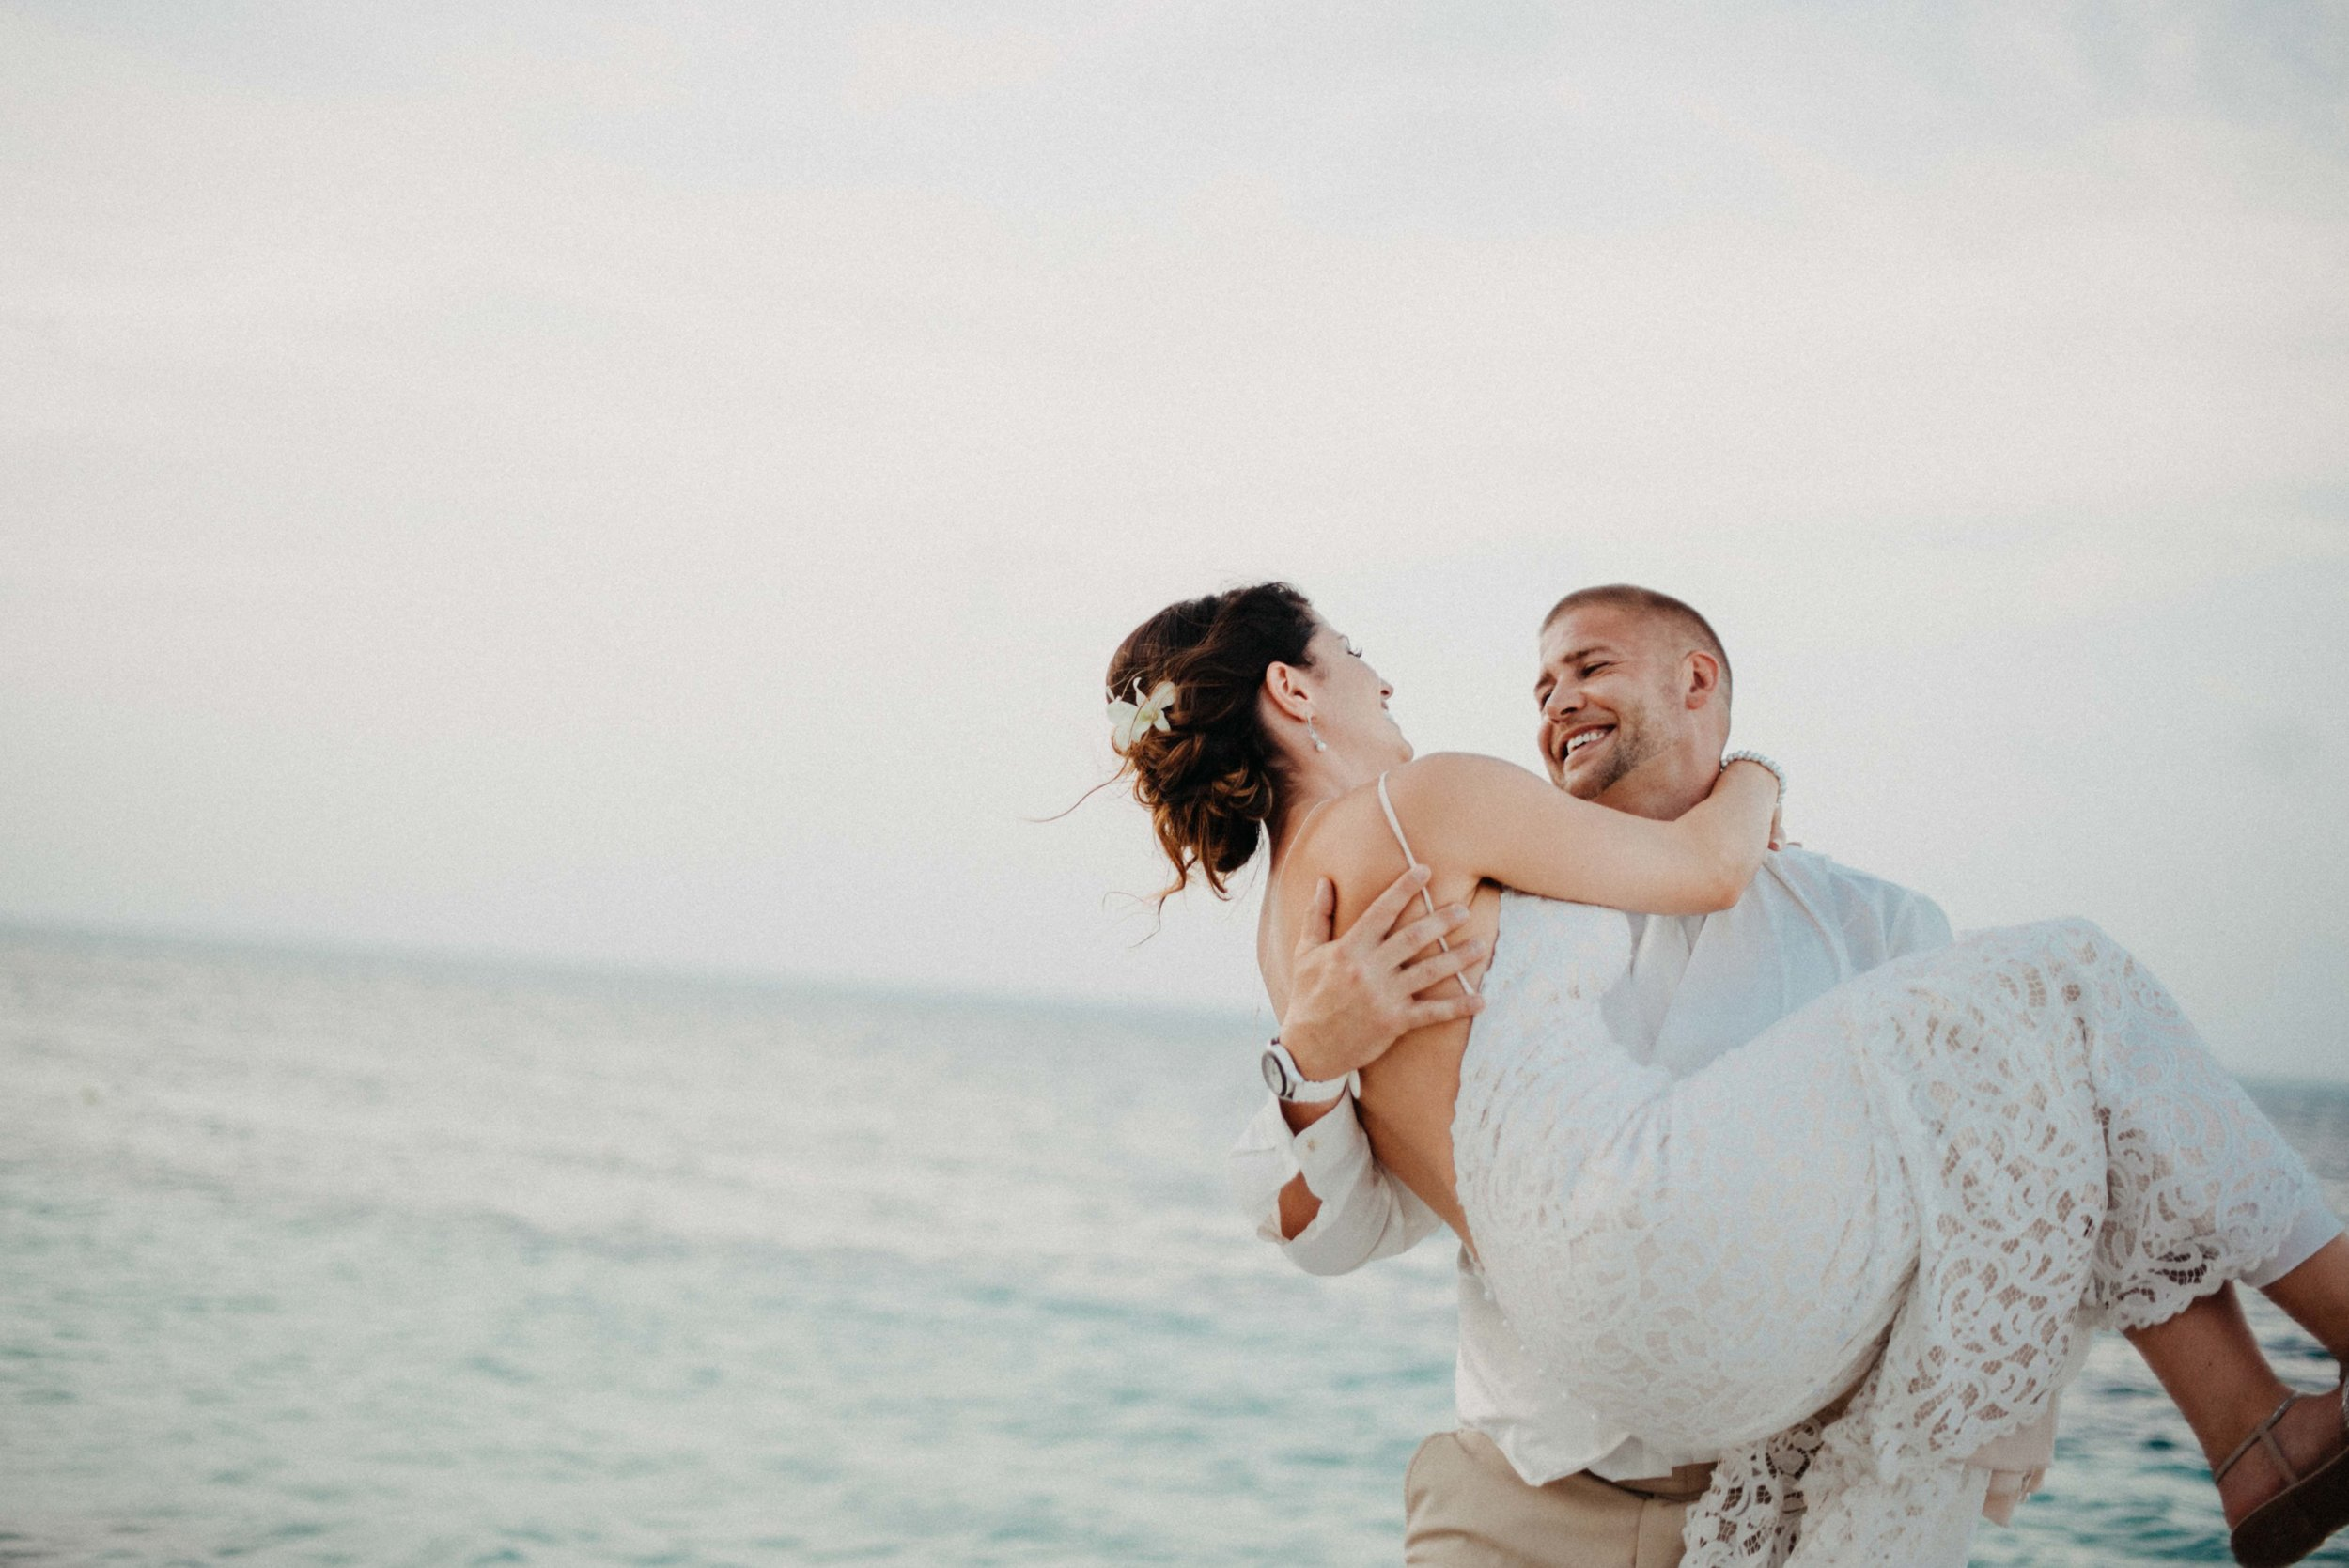 Julia_TonyBlog (101 of 174).jpgBeach-Wedding-Photography-Cancun-Elopement-Destination-Elopement-Photography-Destination-Beach-Wedding-+Costa-Rica-Wedding-Photography-Beach-Wedding-Photos-teresawoodhull-Cancun-Elopement-Beach-Wedding-+Sunset-Beach-Wedding-Fotografia-de-bodas-Nicoya-Peninsula-Elopement-Photographer-Santa-Teresa-Elopement-Photographer-Adventure-elopement-photographer-Santa-Teresa-Wedding-Photographer-Adventure-Wedding-Boda-playa-santa-teresa-Adventure-Wedding-Photography-Adventure-Wedding-Photographer-Beach-Elopement-Beach-Elopement-Photos-maddie-mae-Beach-Elopement-Photographer-Destination-Elopement-Photographer-Sunset-Beach-Elopement-Mexico-wedding-photographer-cabo-wedding-photographer-mexico-wedding-mexico-destination-wedding-cancun-destination-wedding-cancun-elopement-photographer-playa-del-carmen-wedding-playa-del-carmen-destination-wedding-photographer-playa-del-carmen-wedding-photography-Nicoya-Peninsula-Wedding-Photography-Nicoya-Peninsula-Wedding-Photographer-Nicoya-Peninsula-Elopement-Photography-julia-tony-014